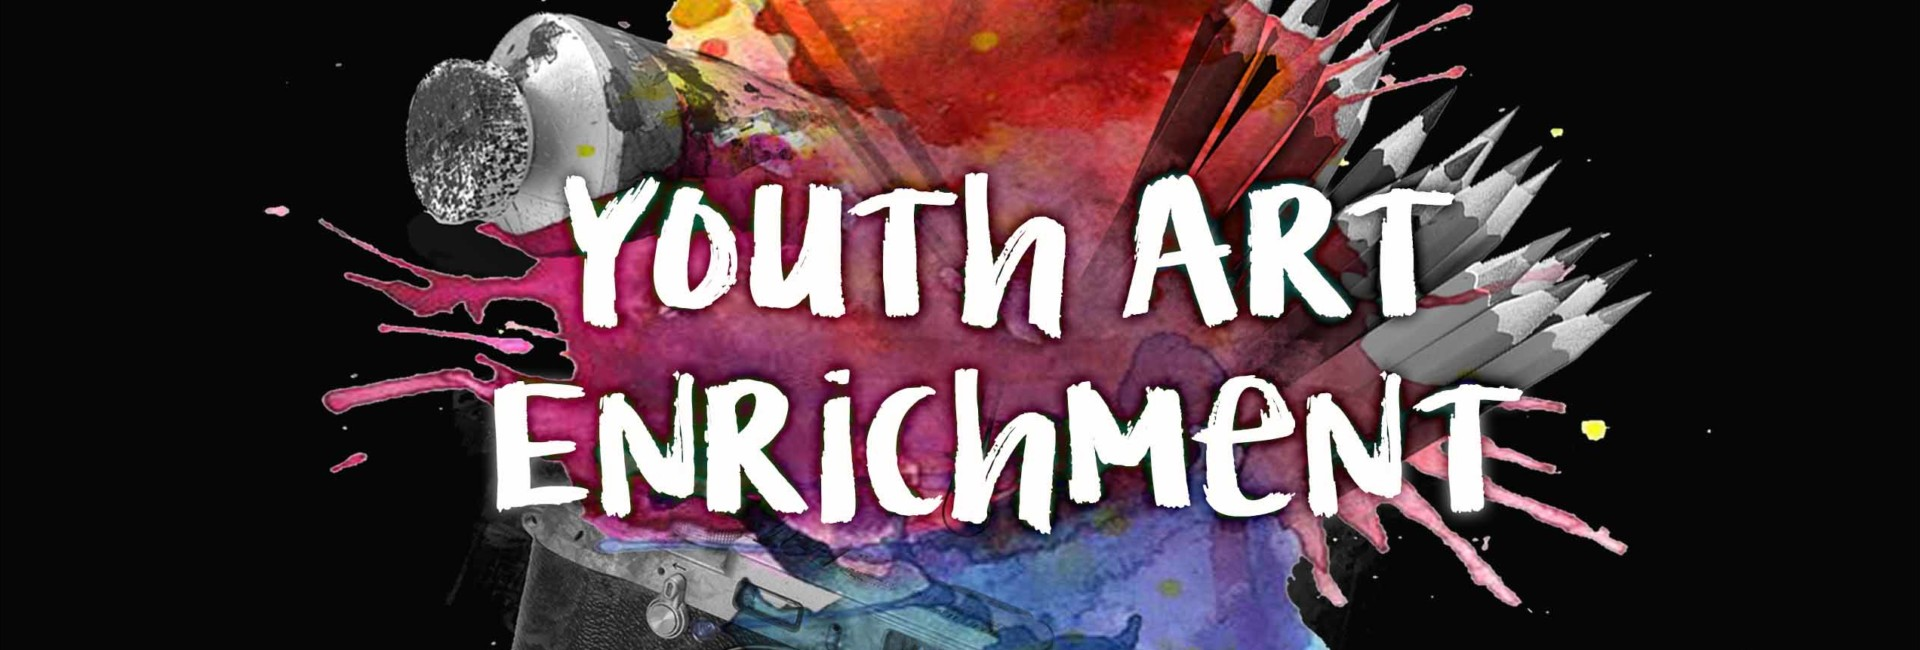 Youth Art Enrichment! Wait-list Application Still Available